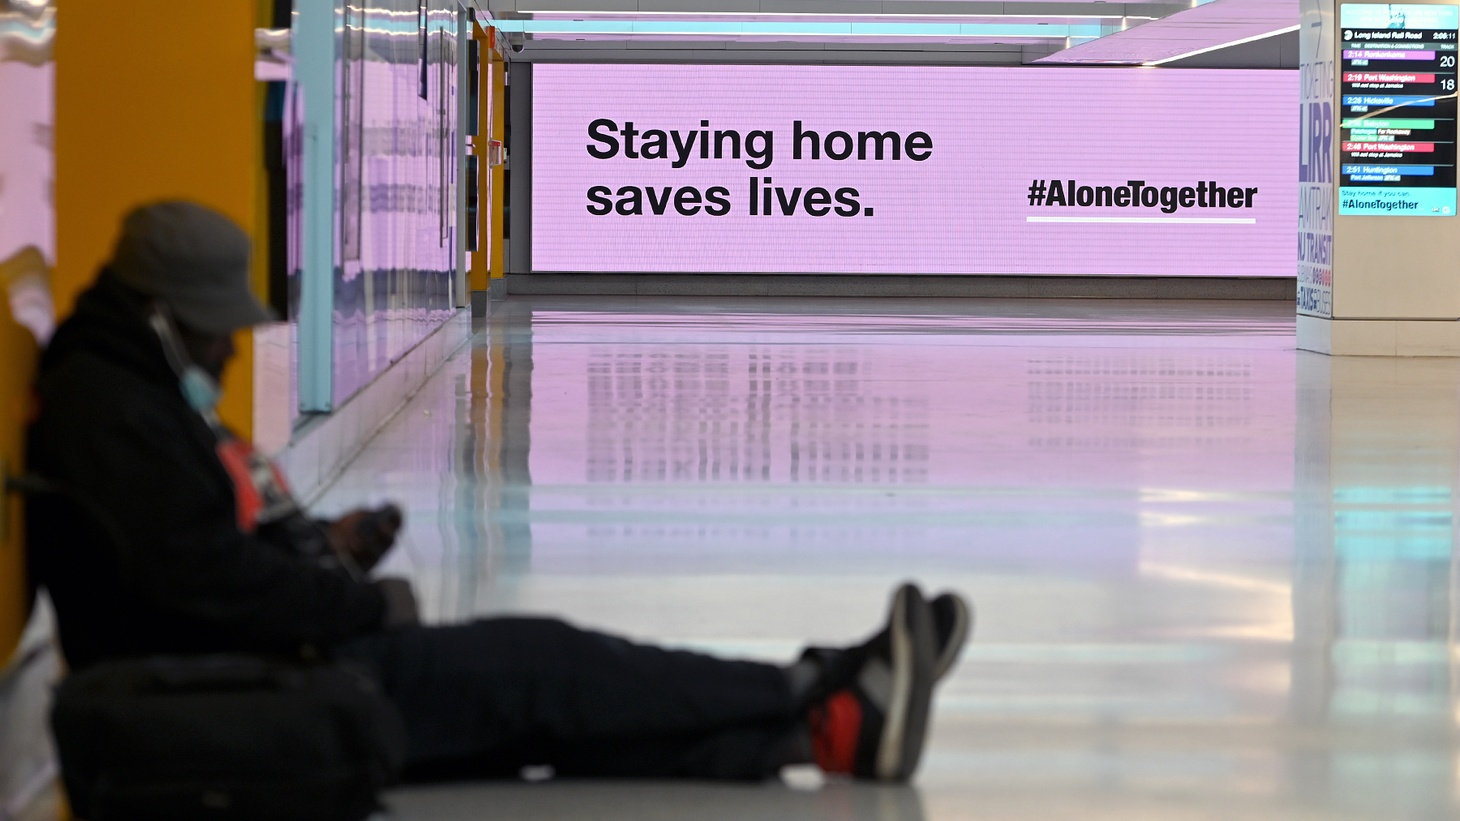 A man sits on the floor of Penn Station as an electronic billboard in the background reminds commuters that not traveling is the best way to keep coronavirus from spreading as Thanksgiving nears, New York, NY, November 17, 2020.